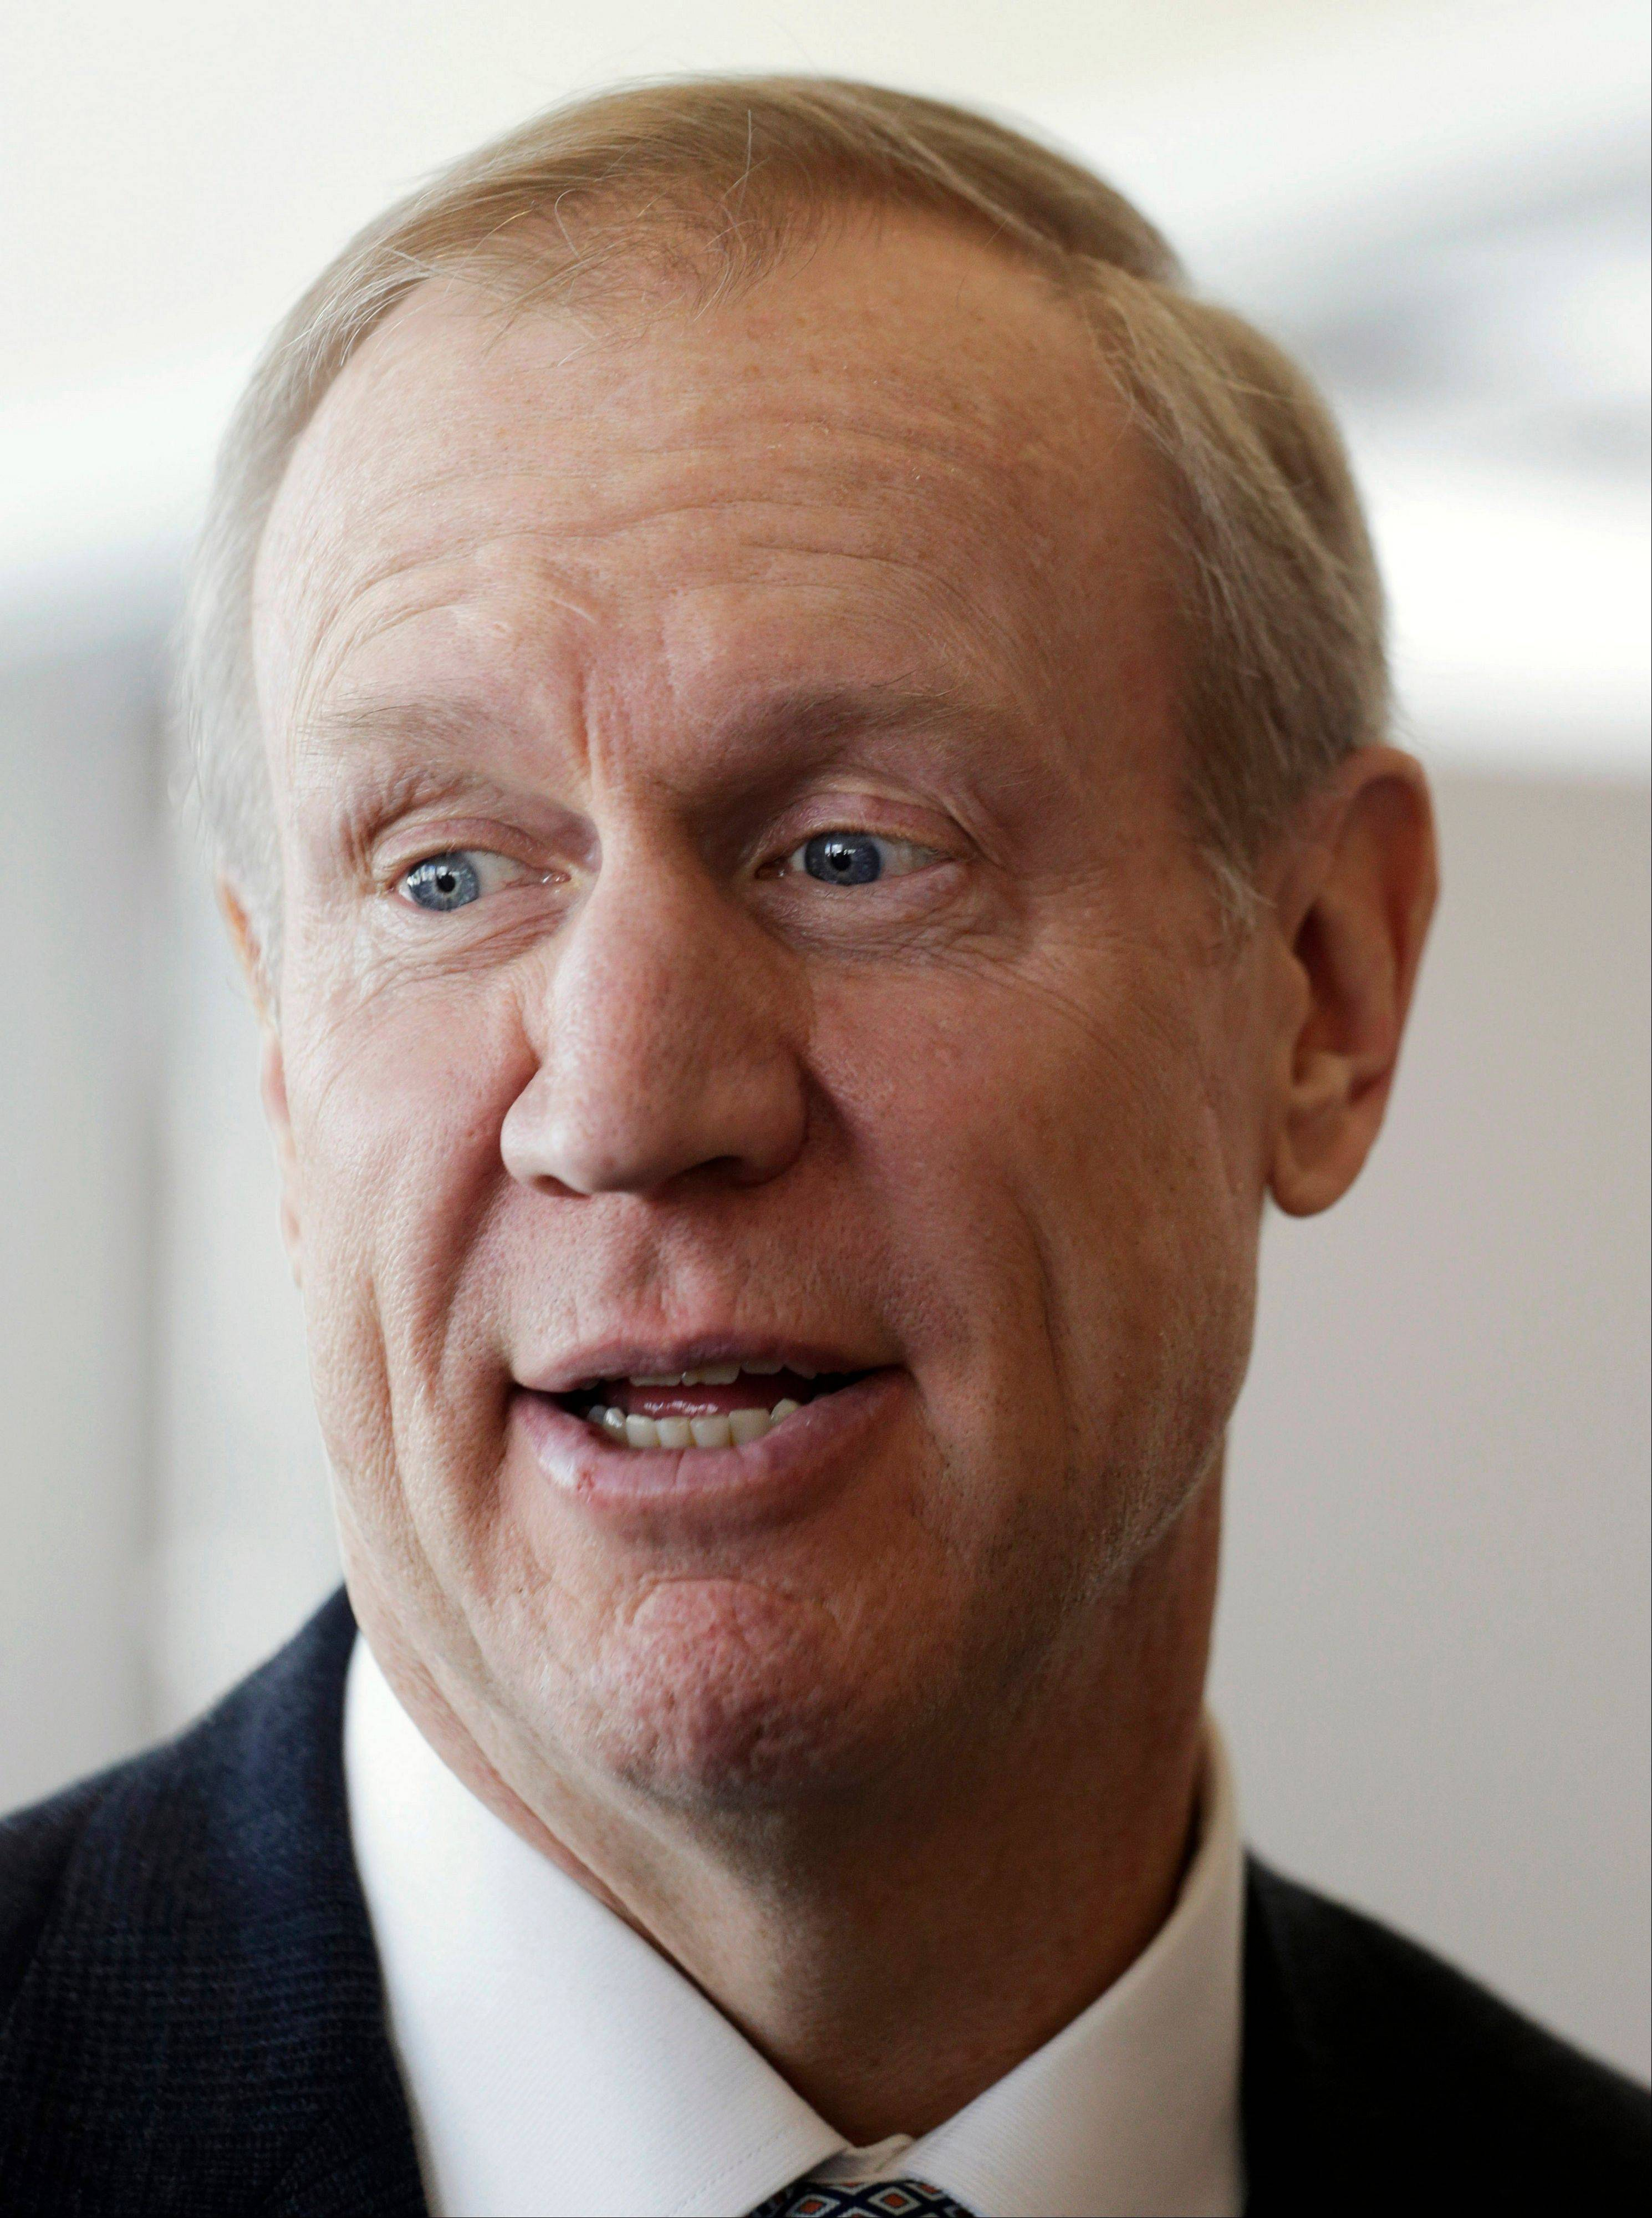 GOP candidate Rauner flips stance on minimum wage